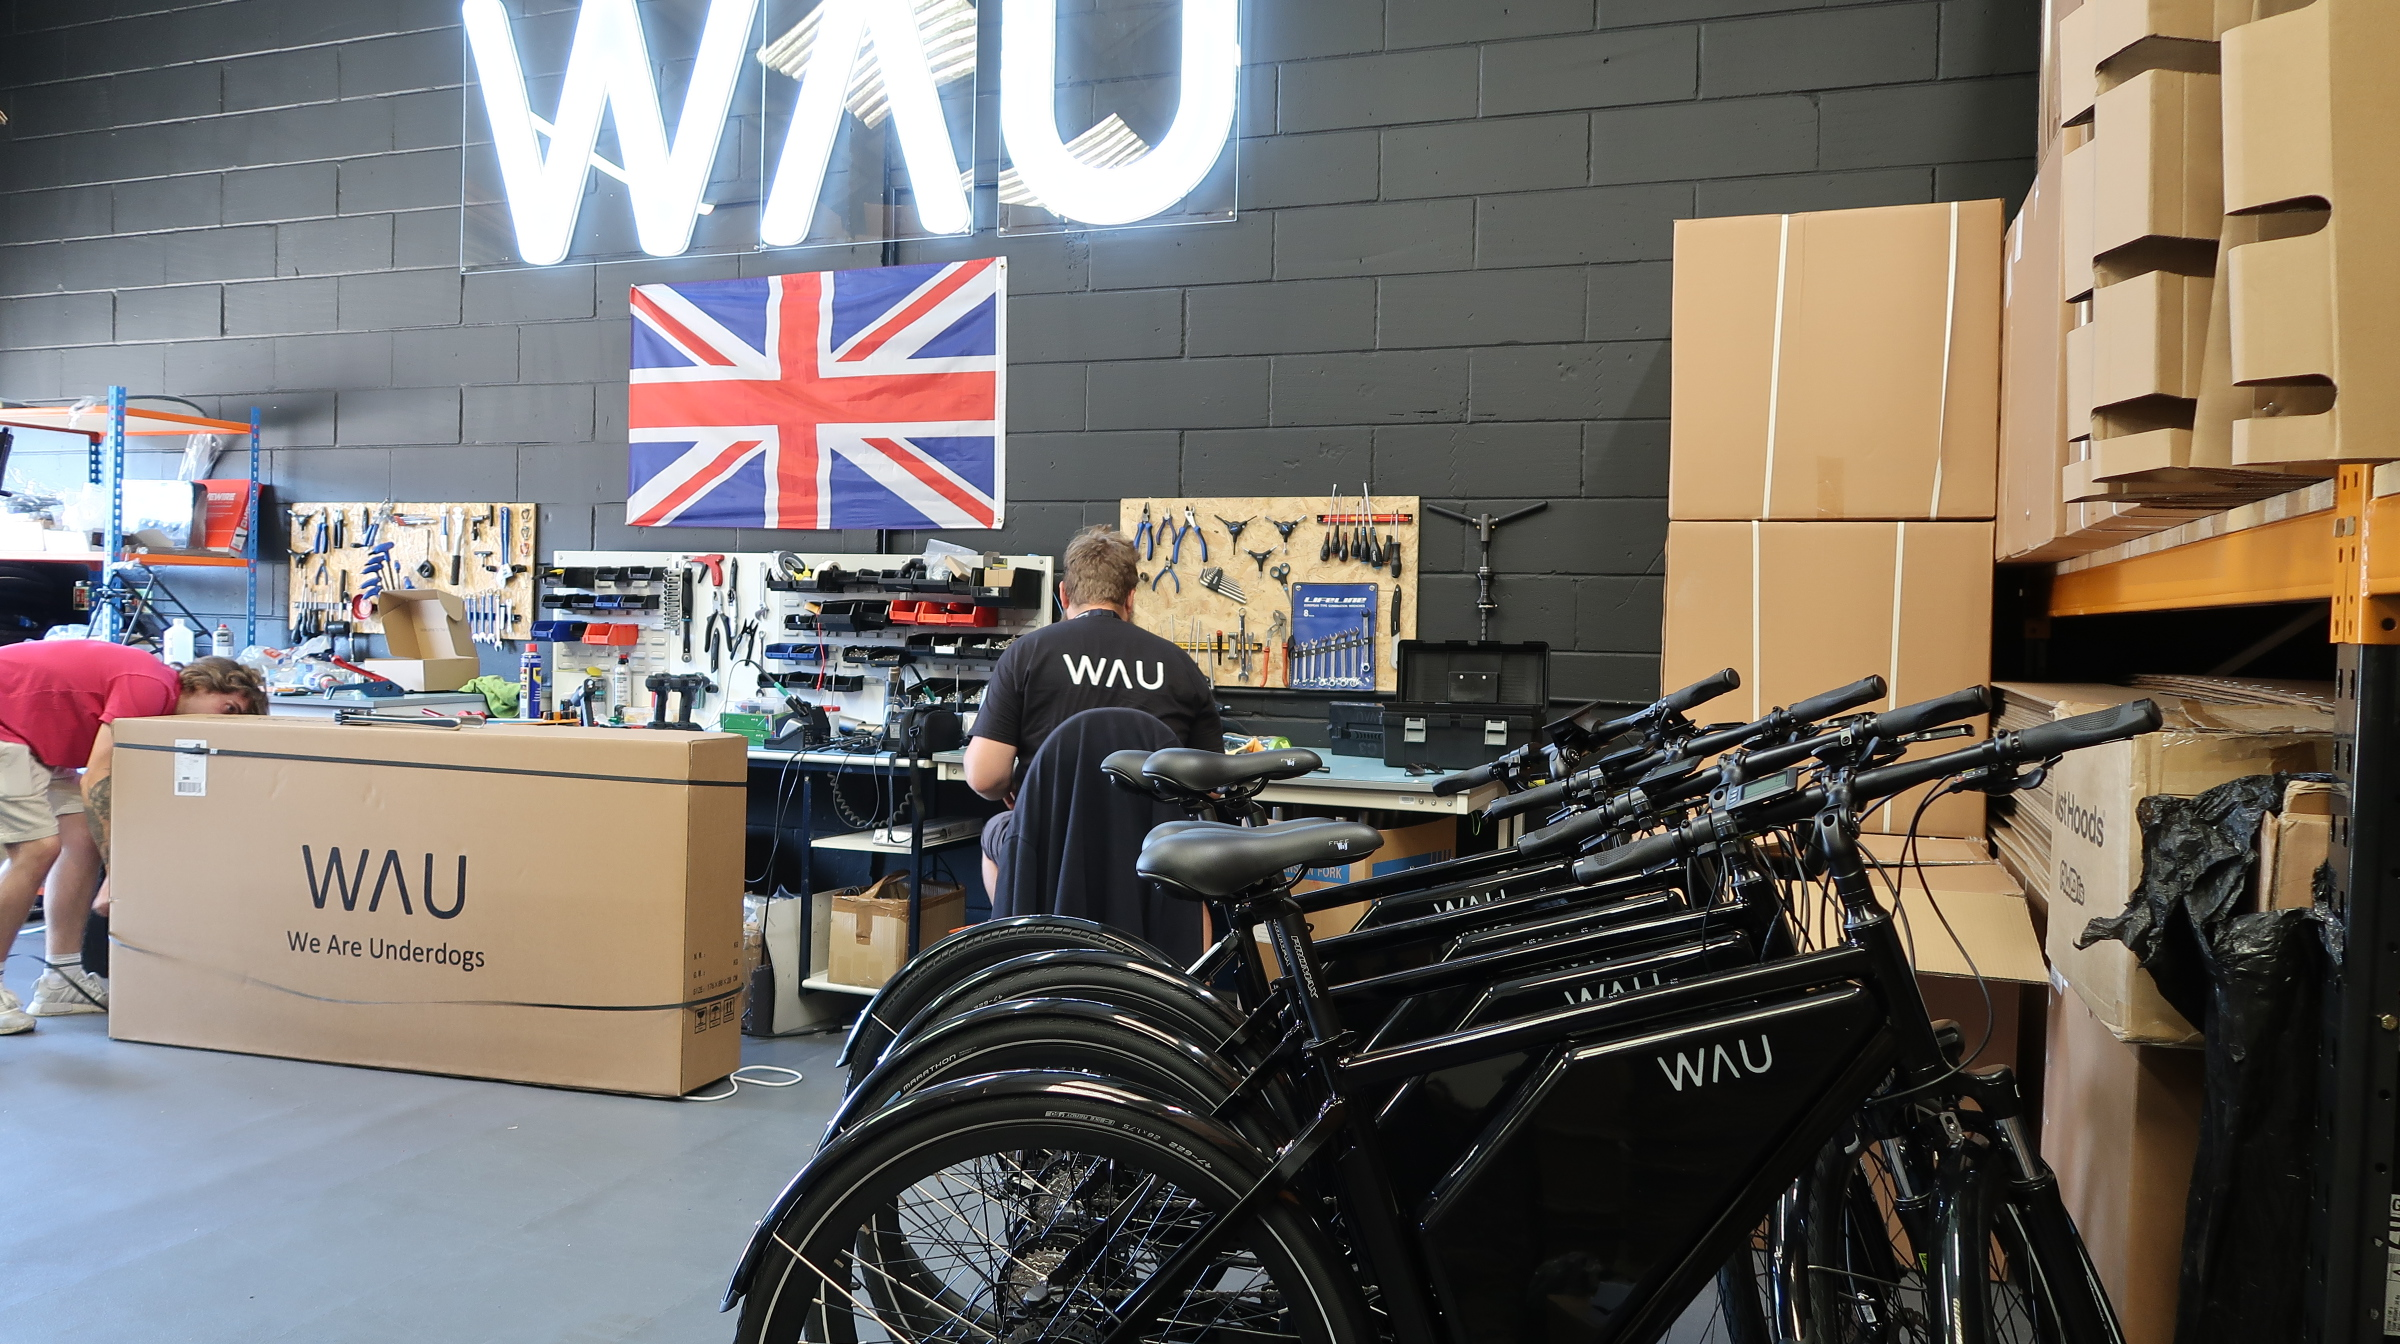 WAU BIKE CHARGED FOR SUCCESS WITH OPENING NEW ESSEX FACTORY